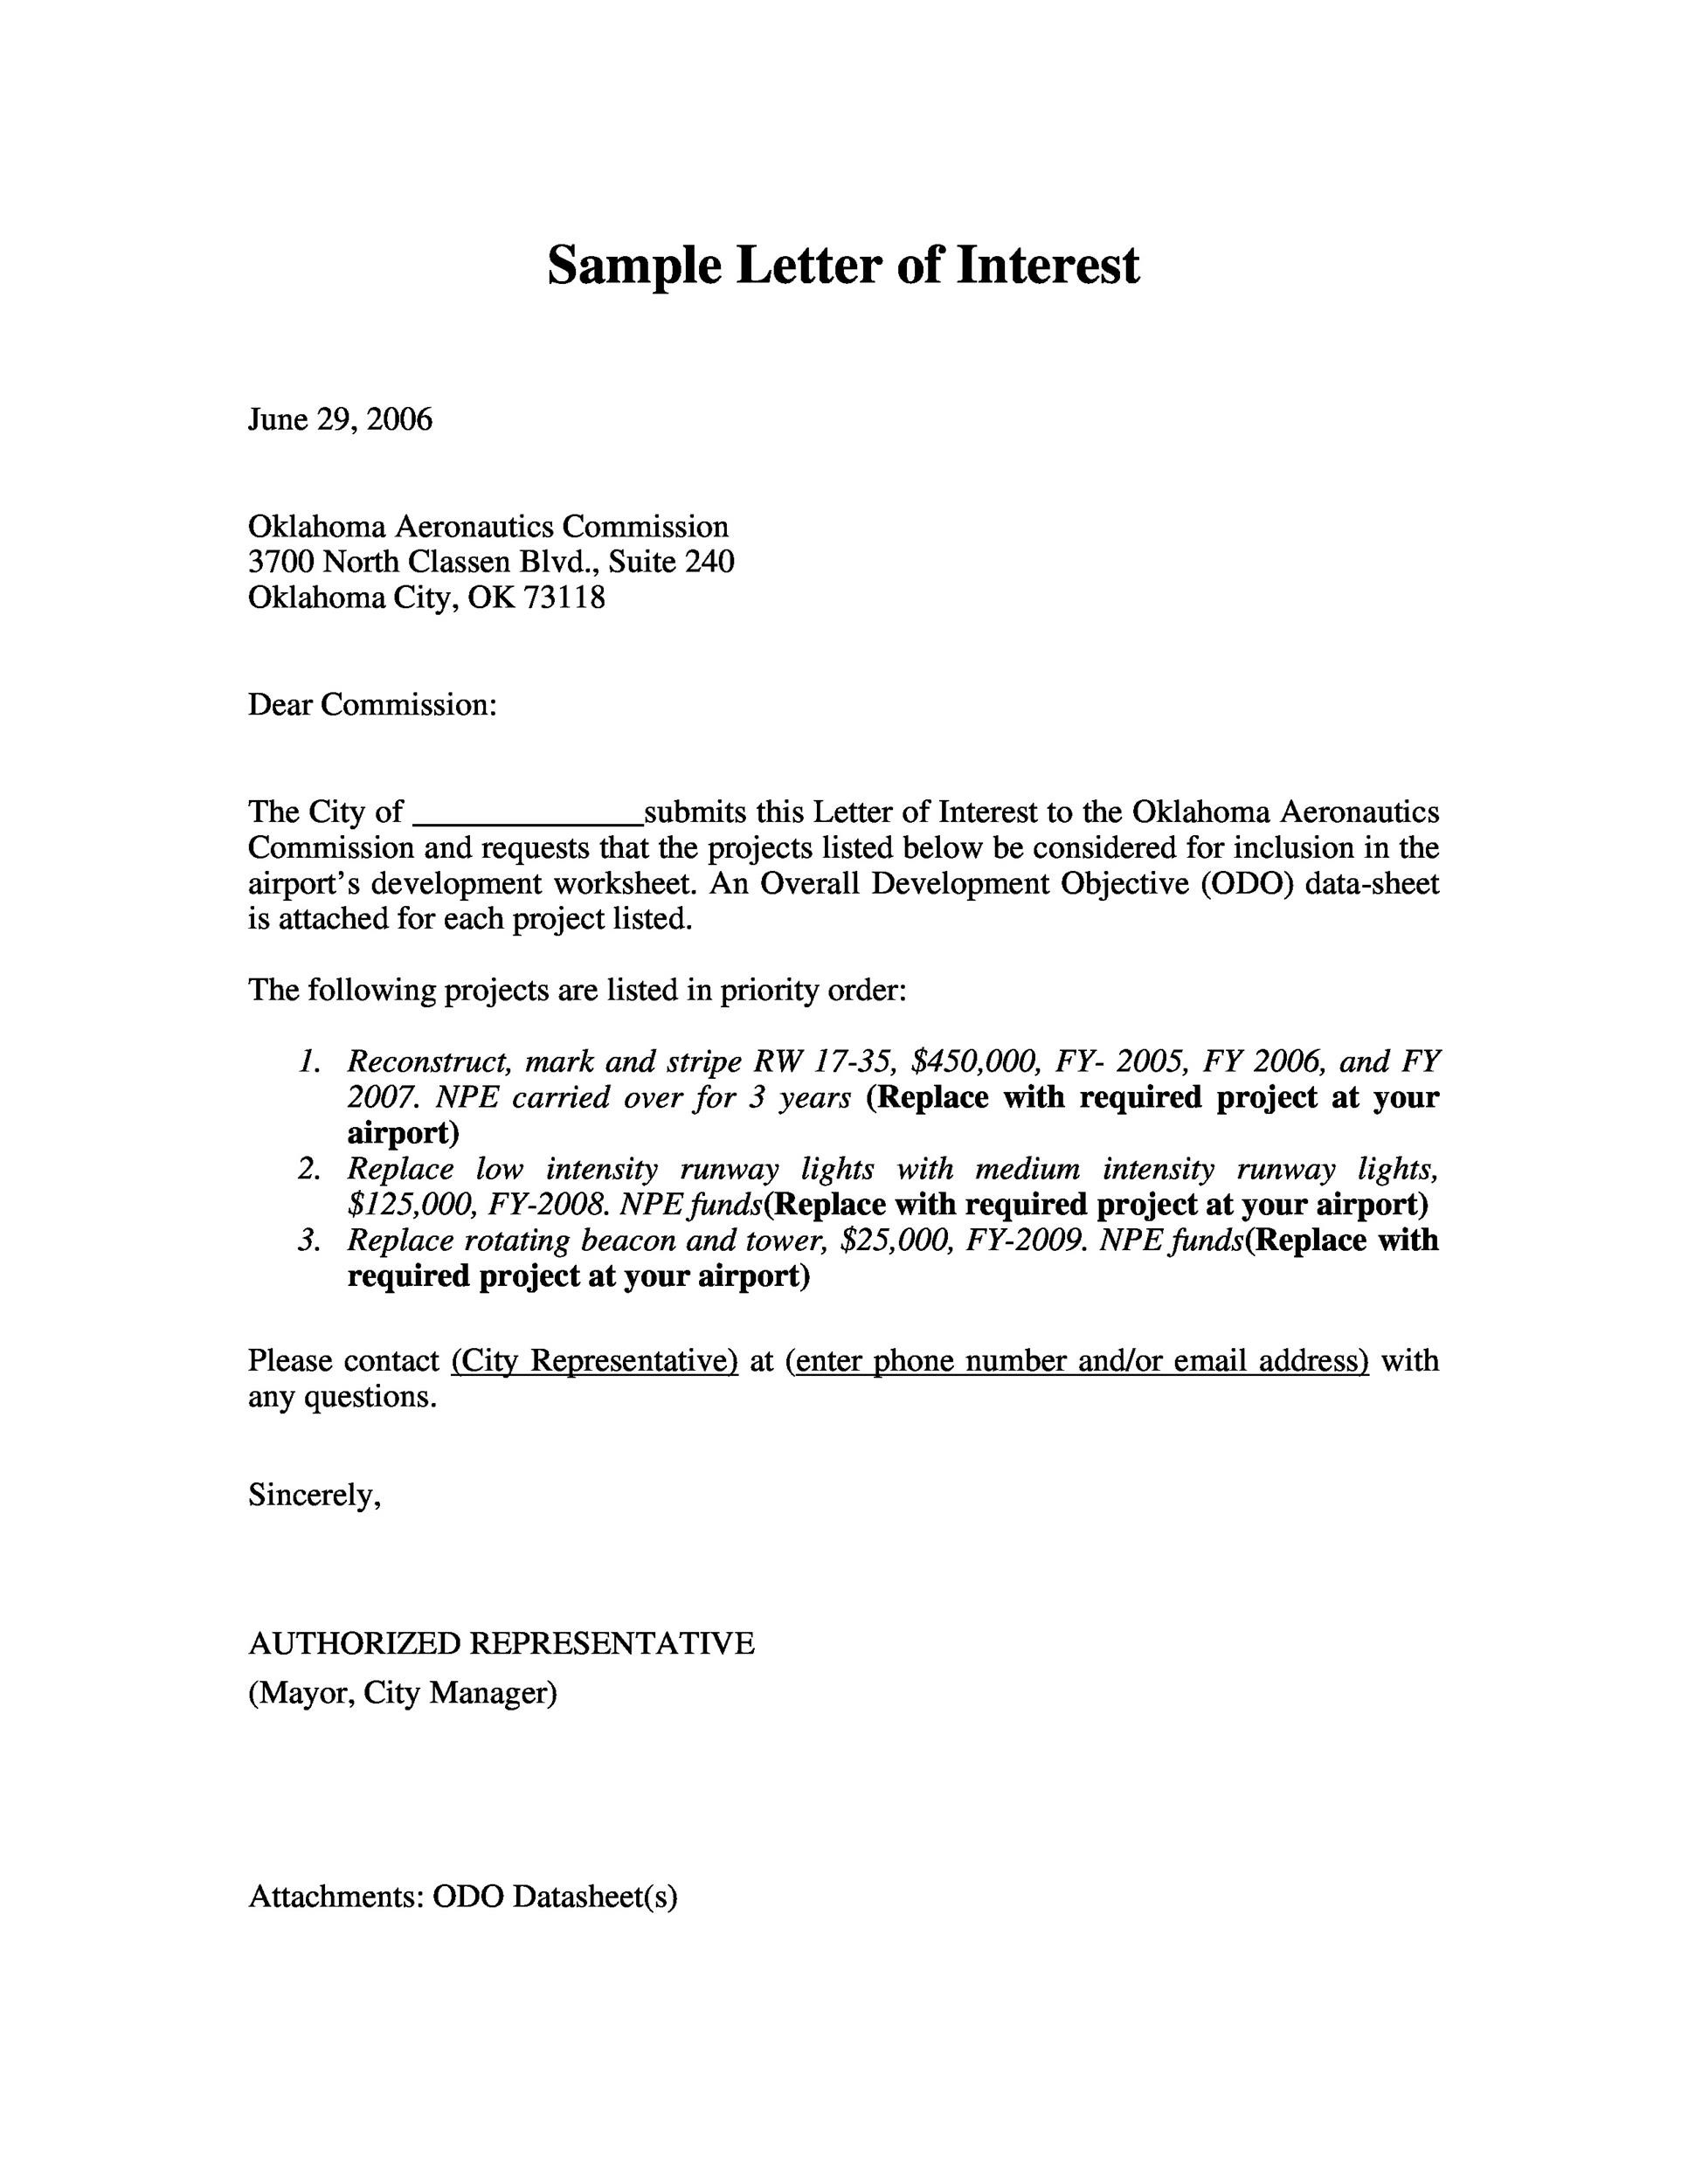 sample letter of interest 30 amazing letter of interest samples templates 24625 | letter of interest 26